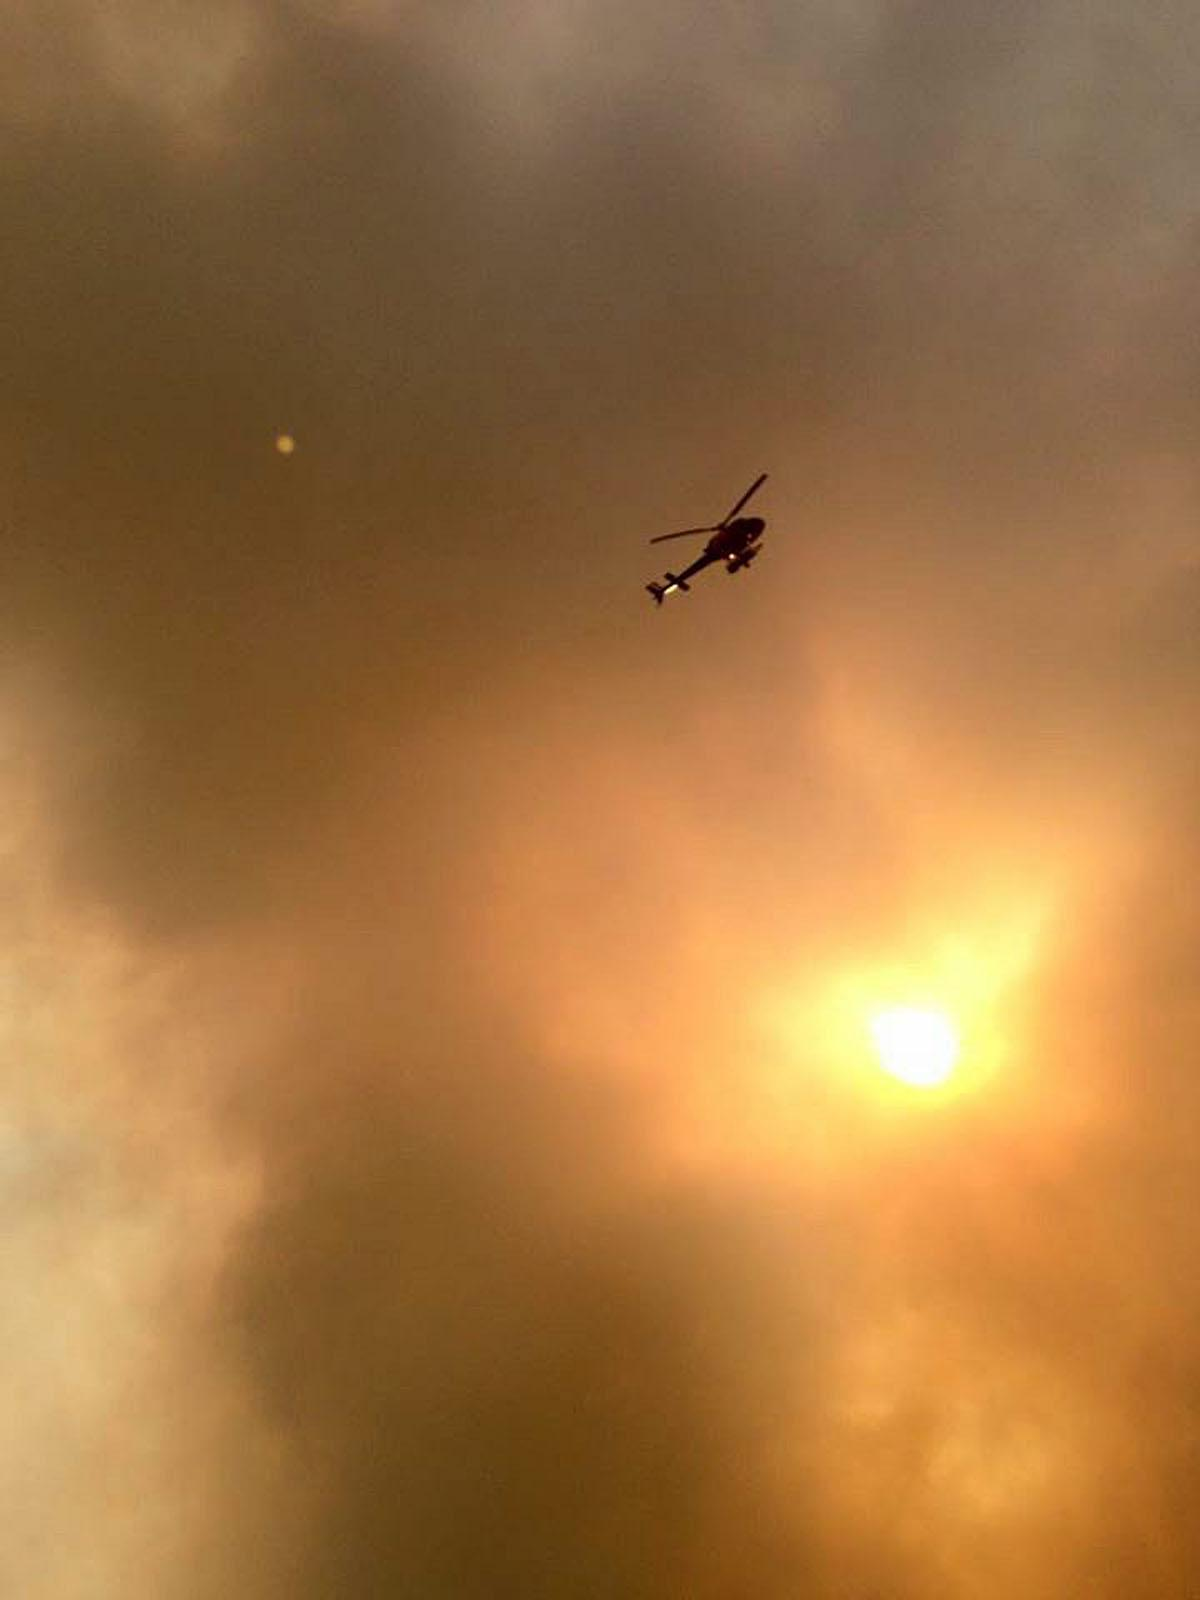 Smoke fills the air as a helicopter flies overhead in Fort McMurray, Alberta on Tuesday, May 3, 2016. The entire population of the Canadian oil sands city of Fort McMurray, has been ordered to evacuate as a wildfire whipped by winds engulfed homes and sent ash raining down on residents.  (Kitty Cochrane/The Canadian Press via AP) MANDATORY CREDIT